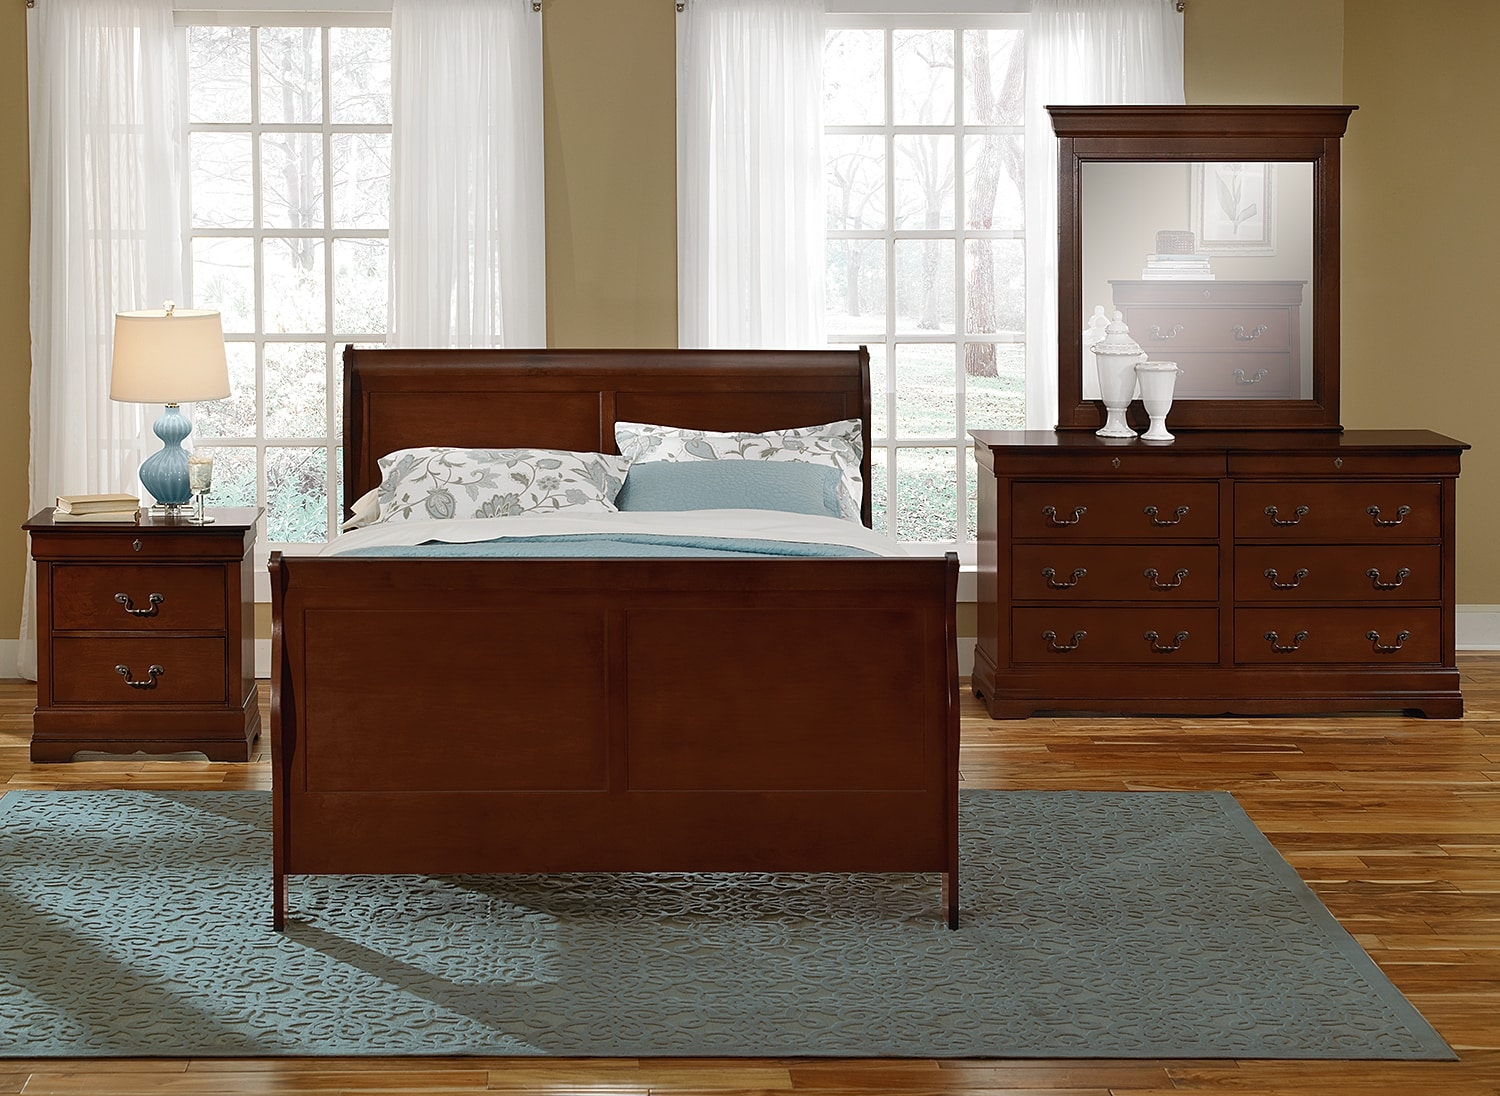 ... Value Center Furniture By Neo Classic Youth 6 Bedroom Set Cherry ...